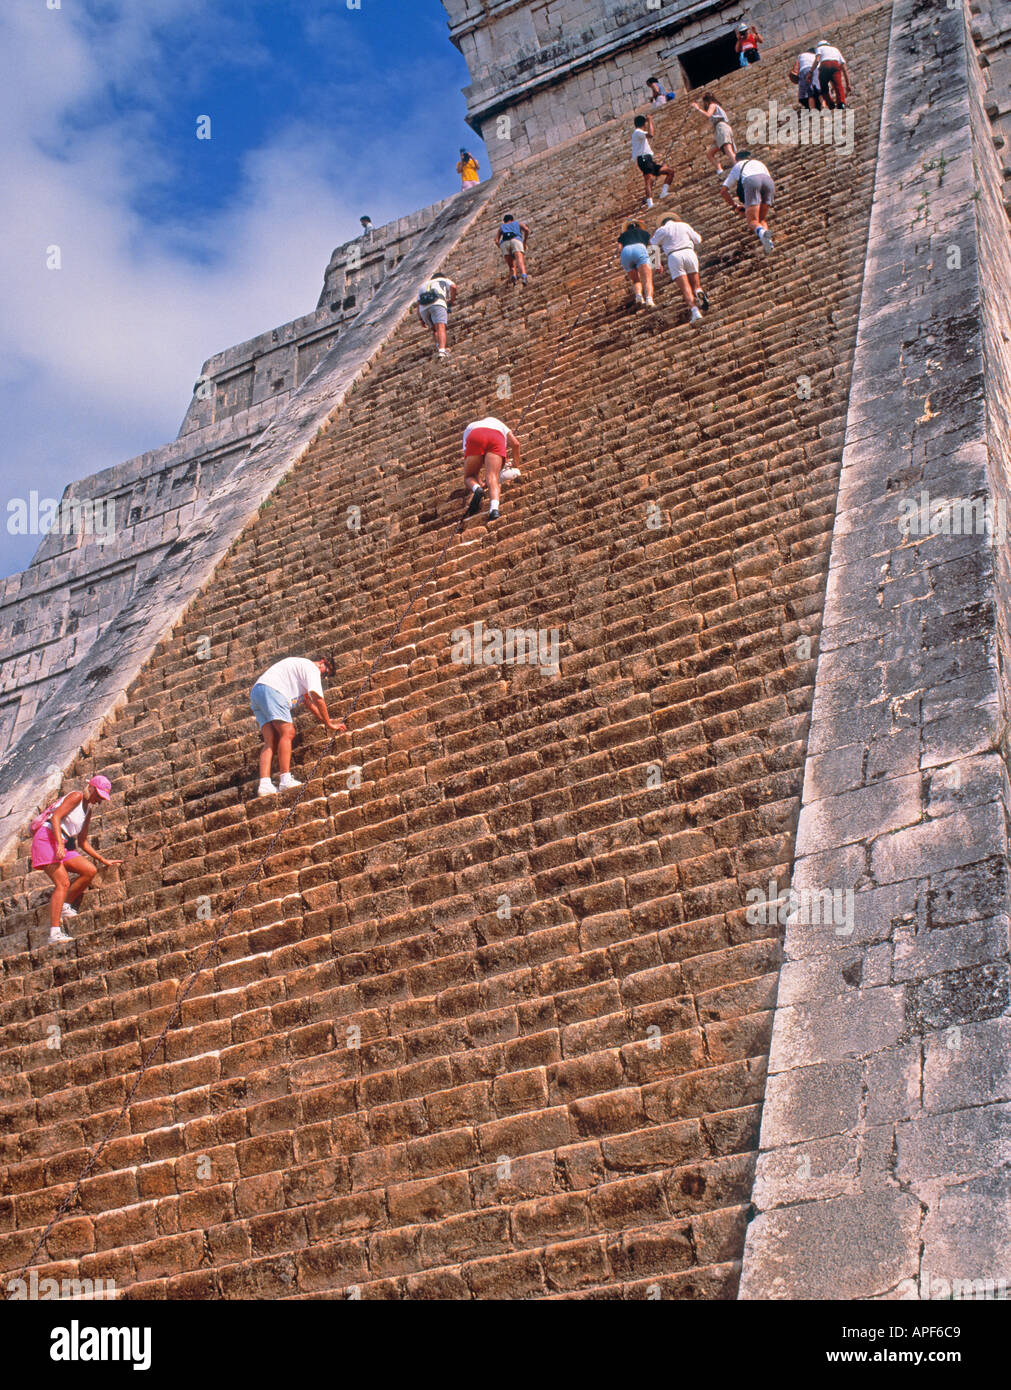 Chichen Itza, Yucatan State, Mexico.  Tourists climbing steep steps of The Castle or Kukalcan's Pyramid - Stock Image